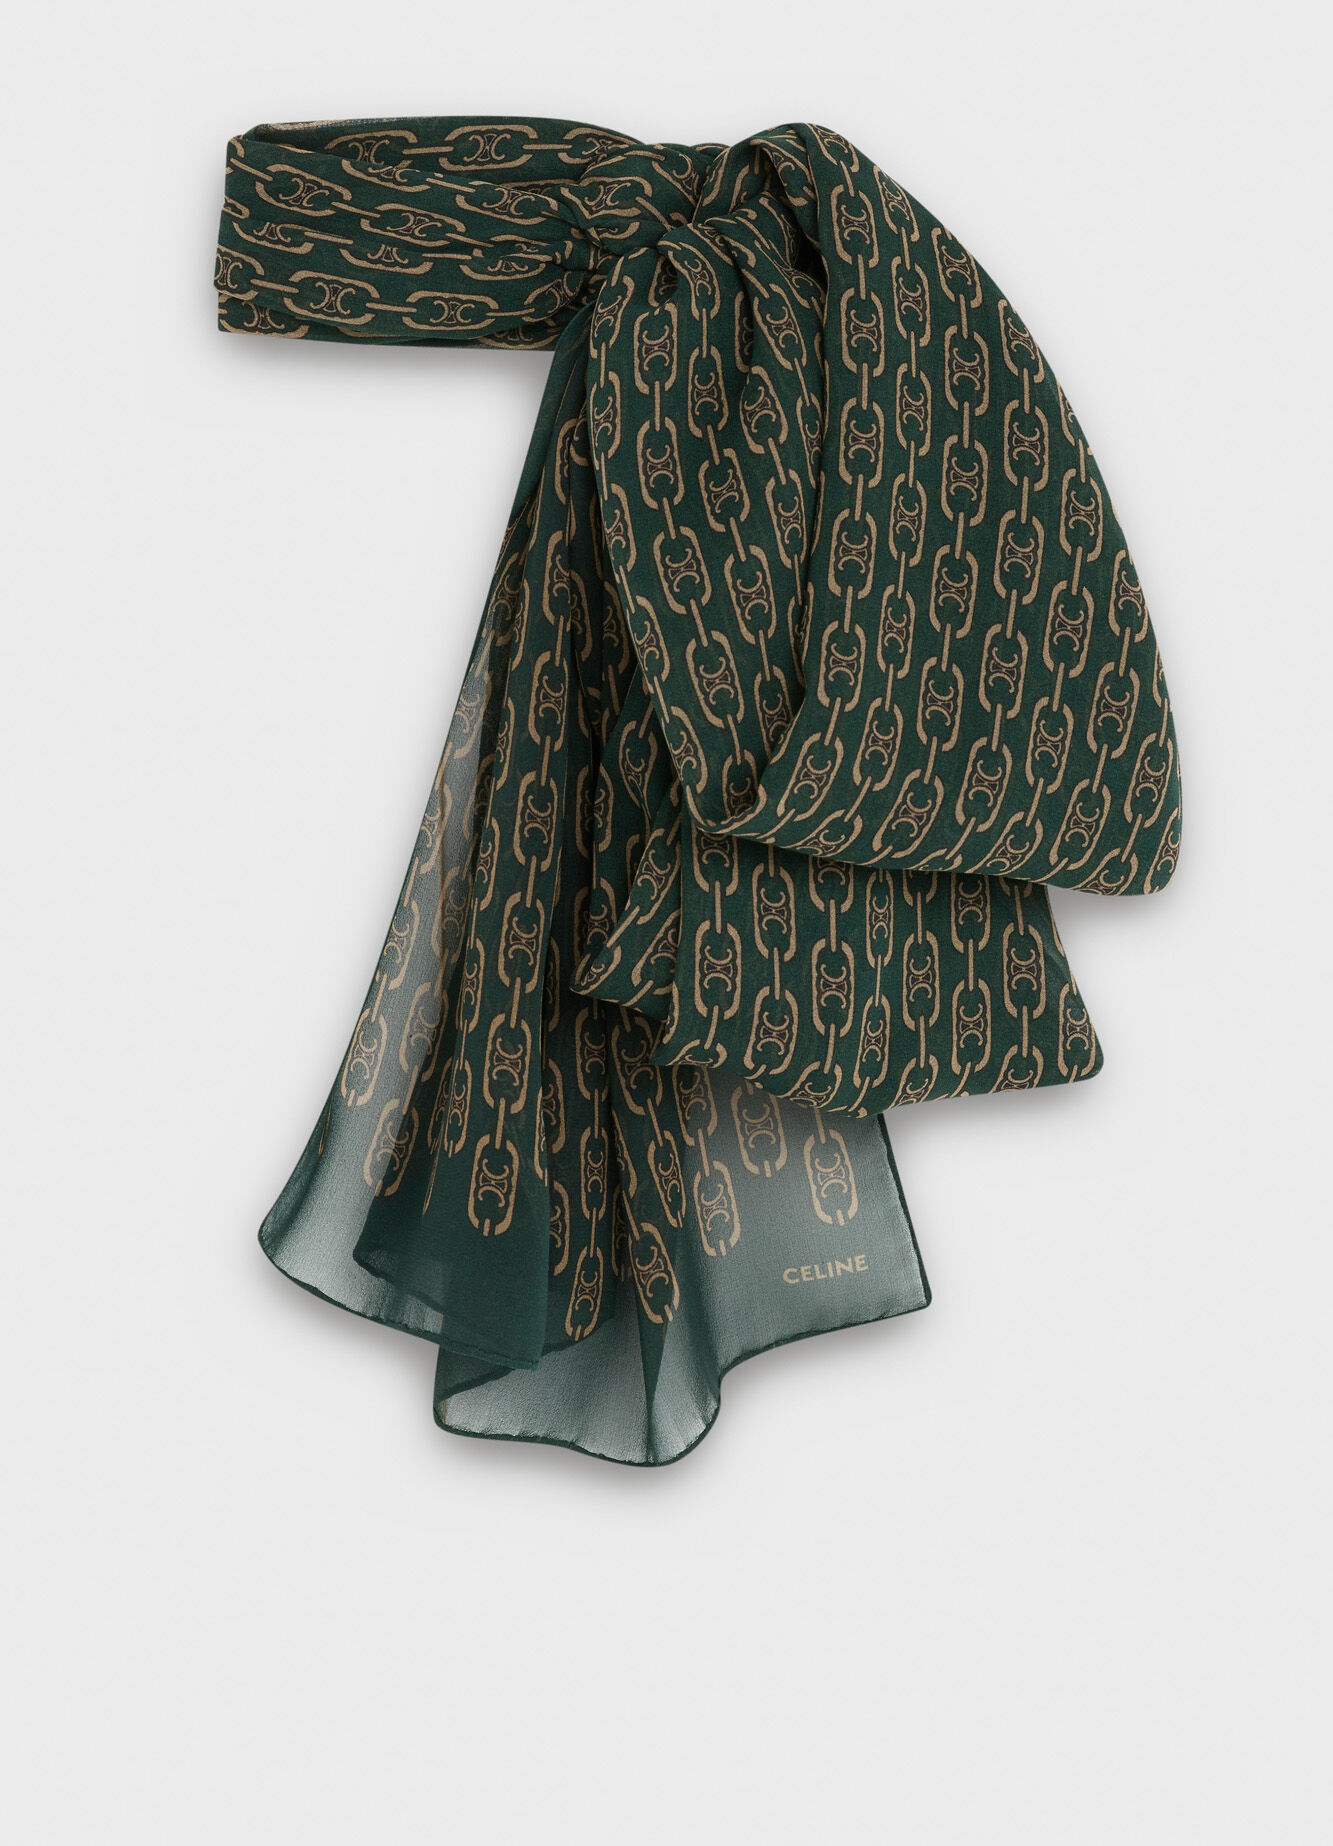 CELINE SCARF IN SILK GEORGETTE WITH 'TRIOMPHE' CHAIN PRINT